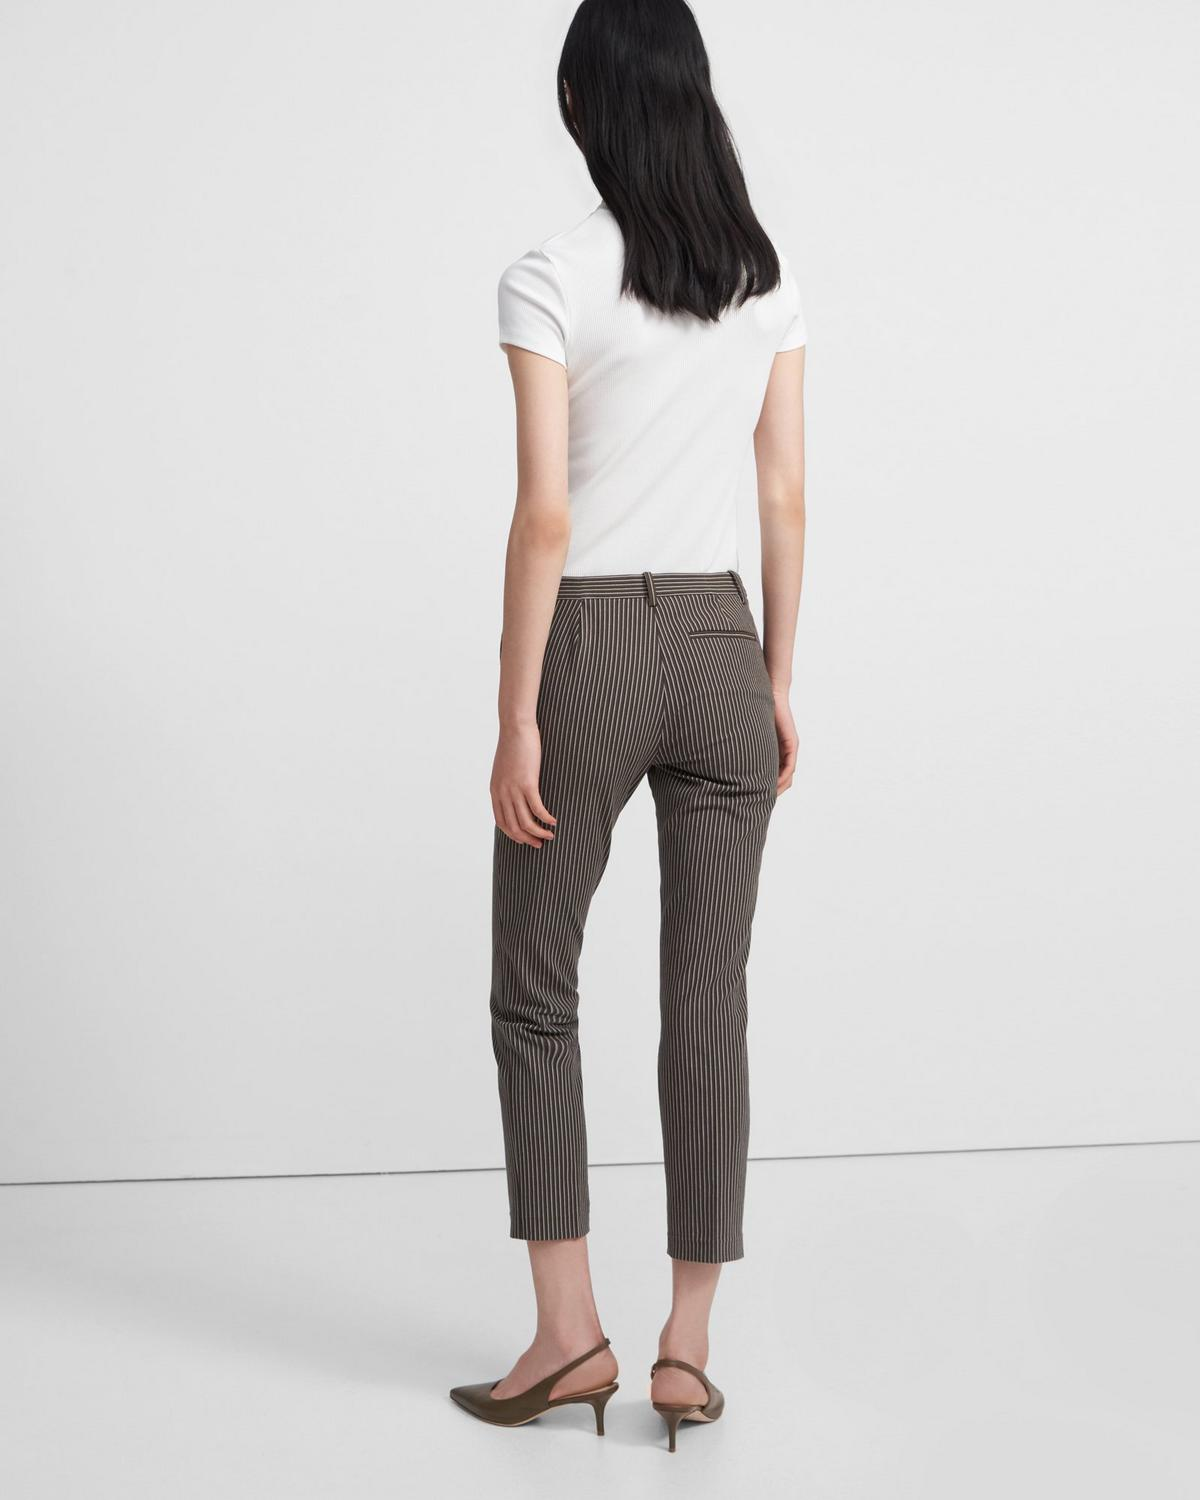 Treeca Pant in Striped Stretch Cotton